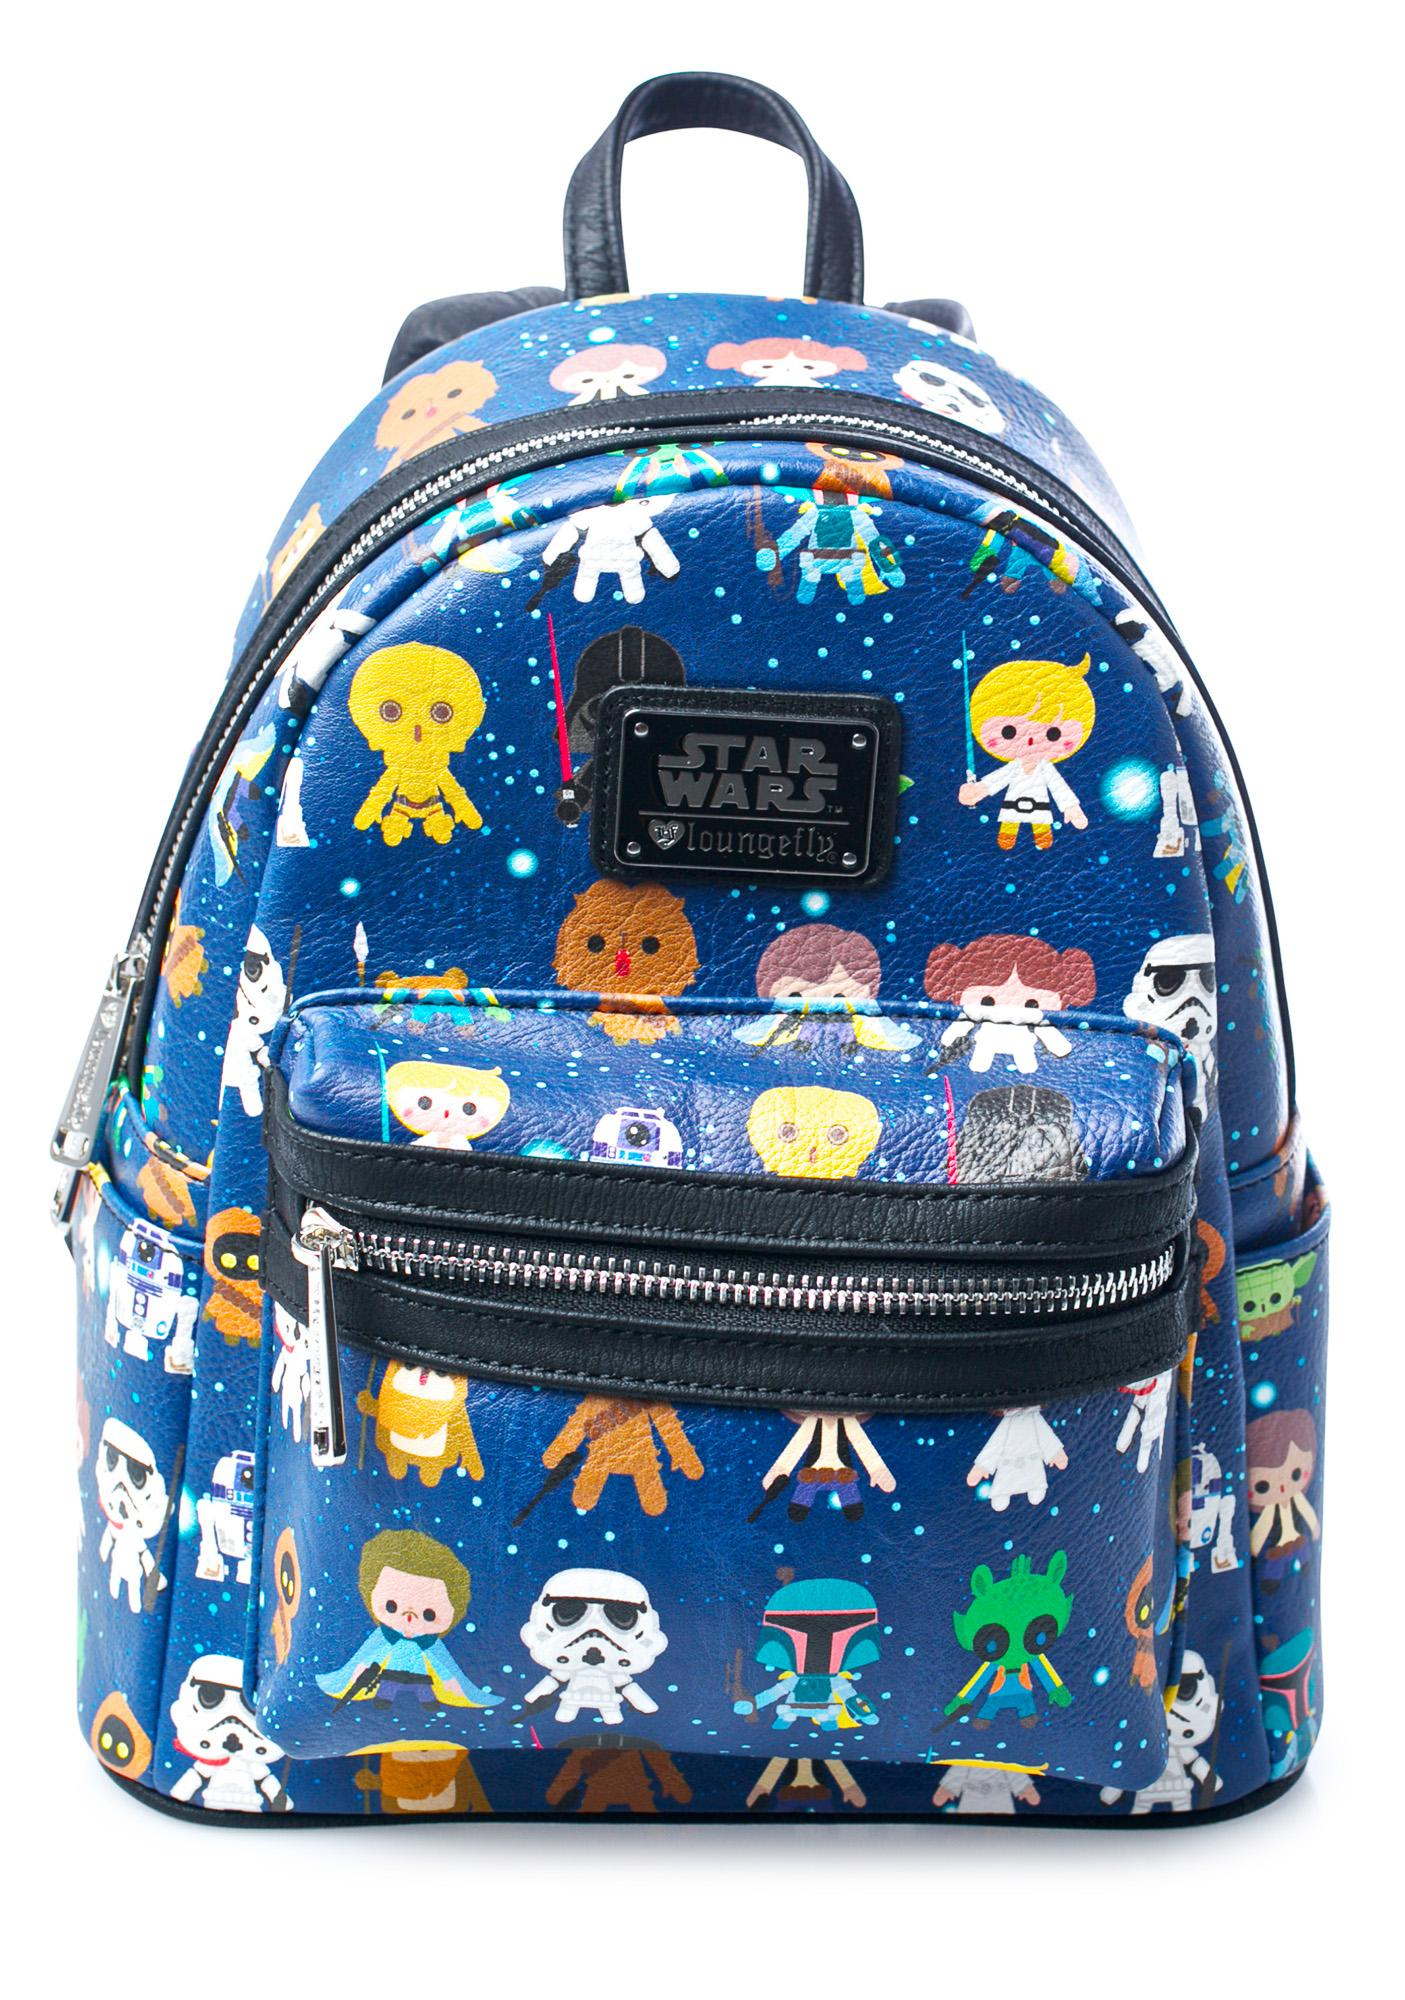 Loungefly Star Wars Backpack